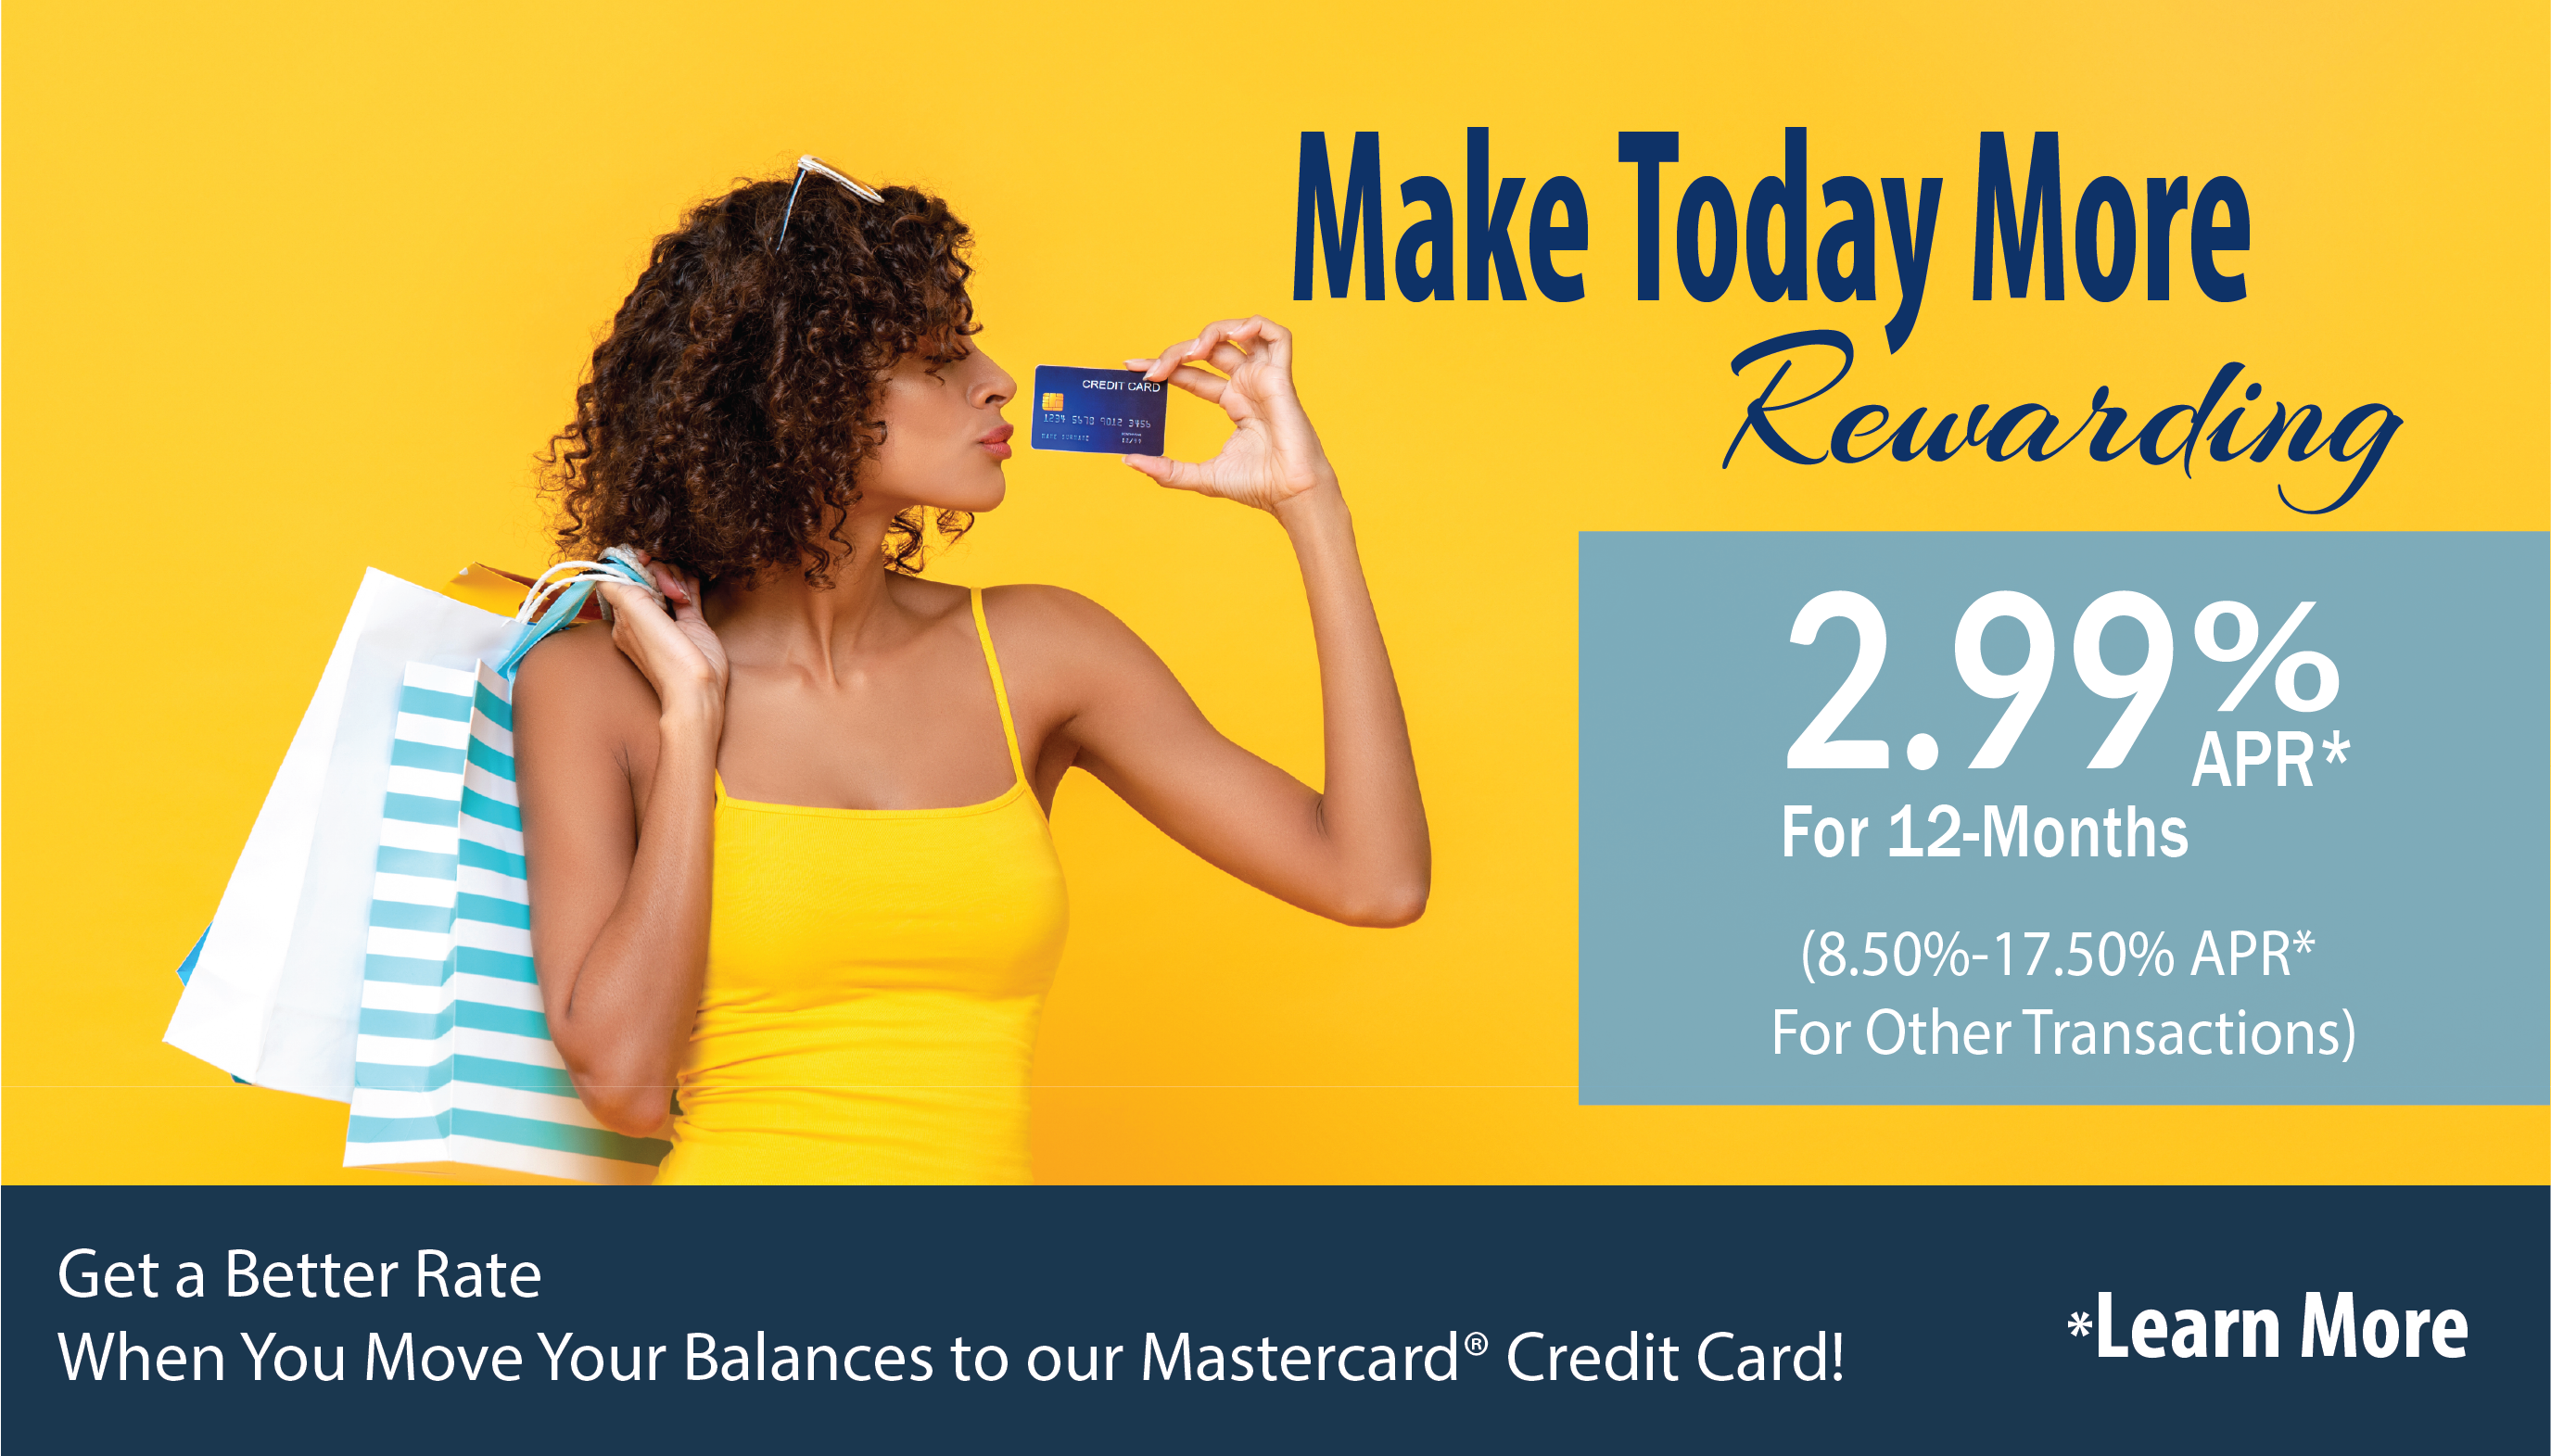 Get a better rate when you move your balances to us!